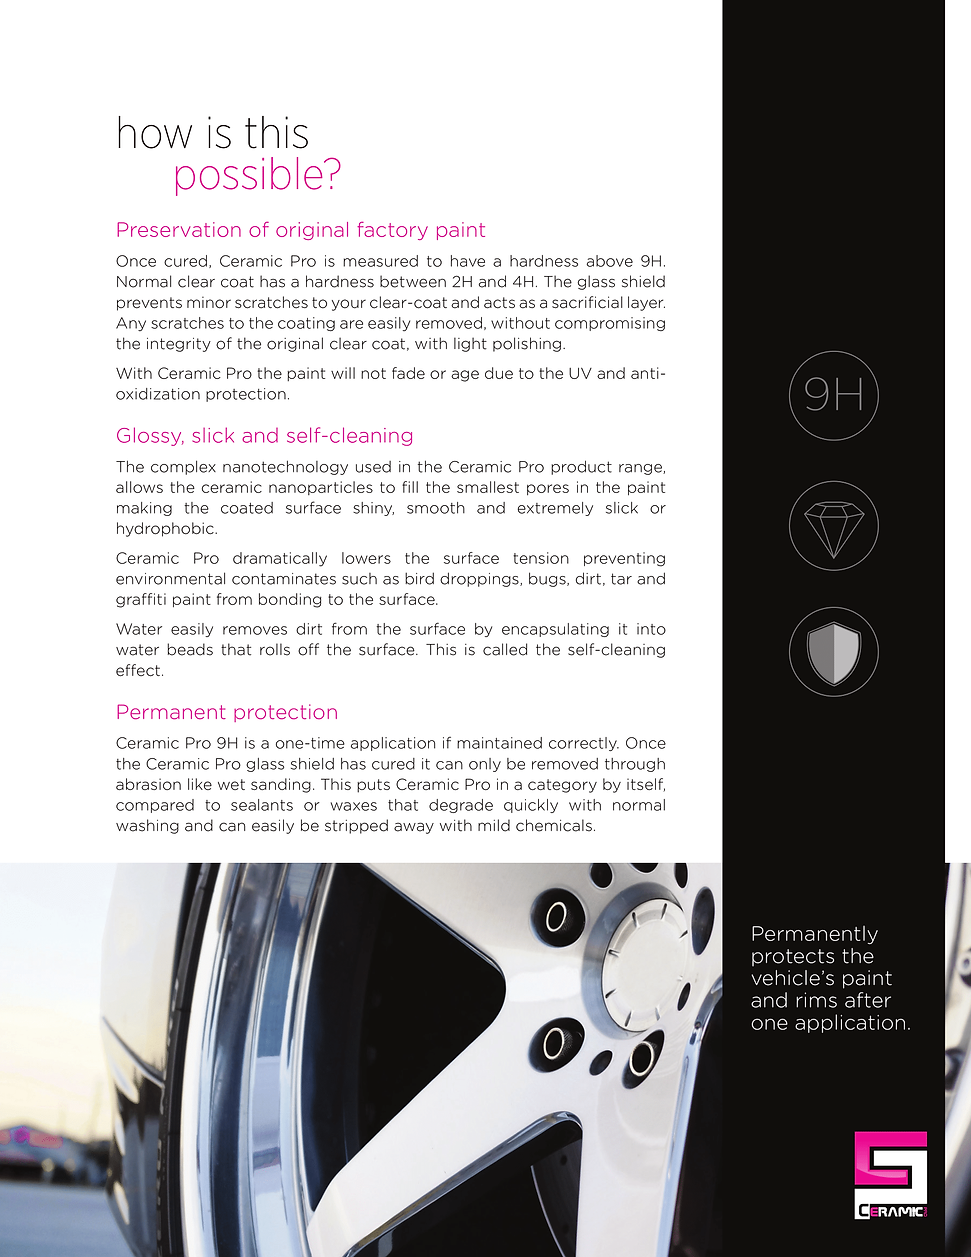 Auto_Brochure_USA_EMAIL (1)-3.png